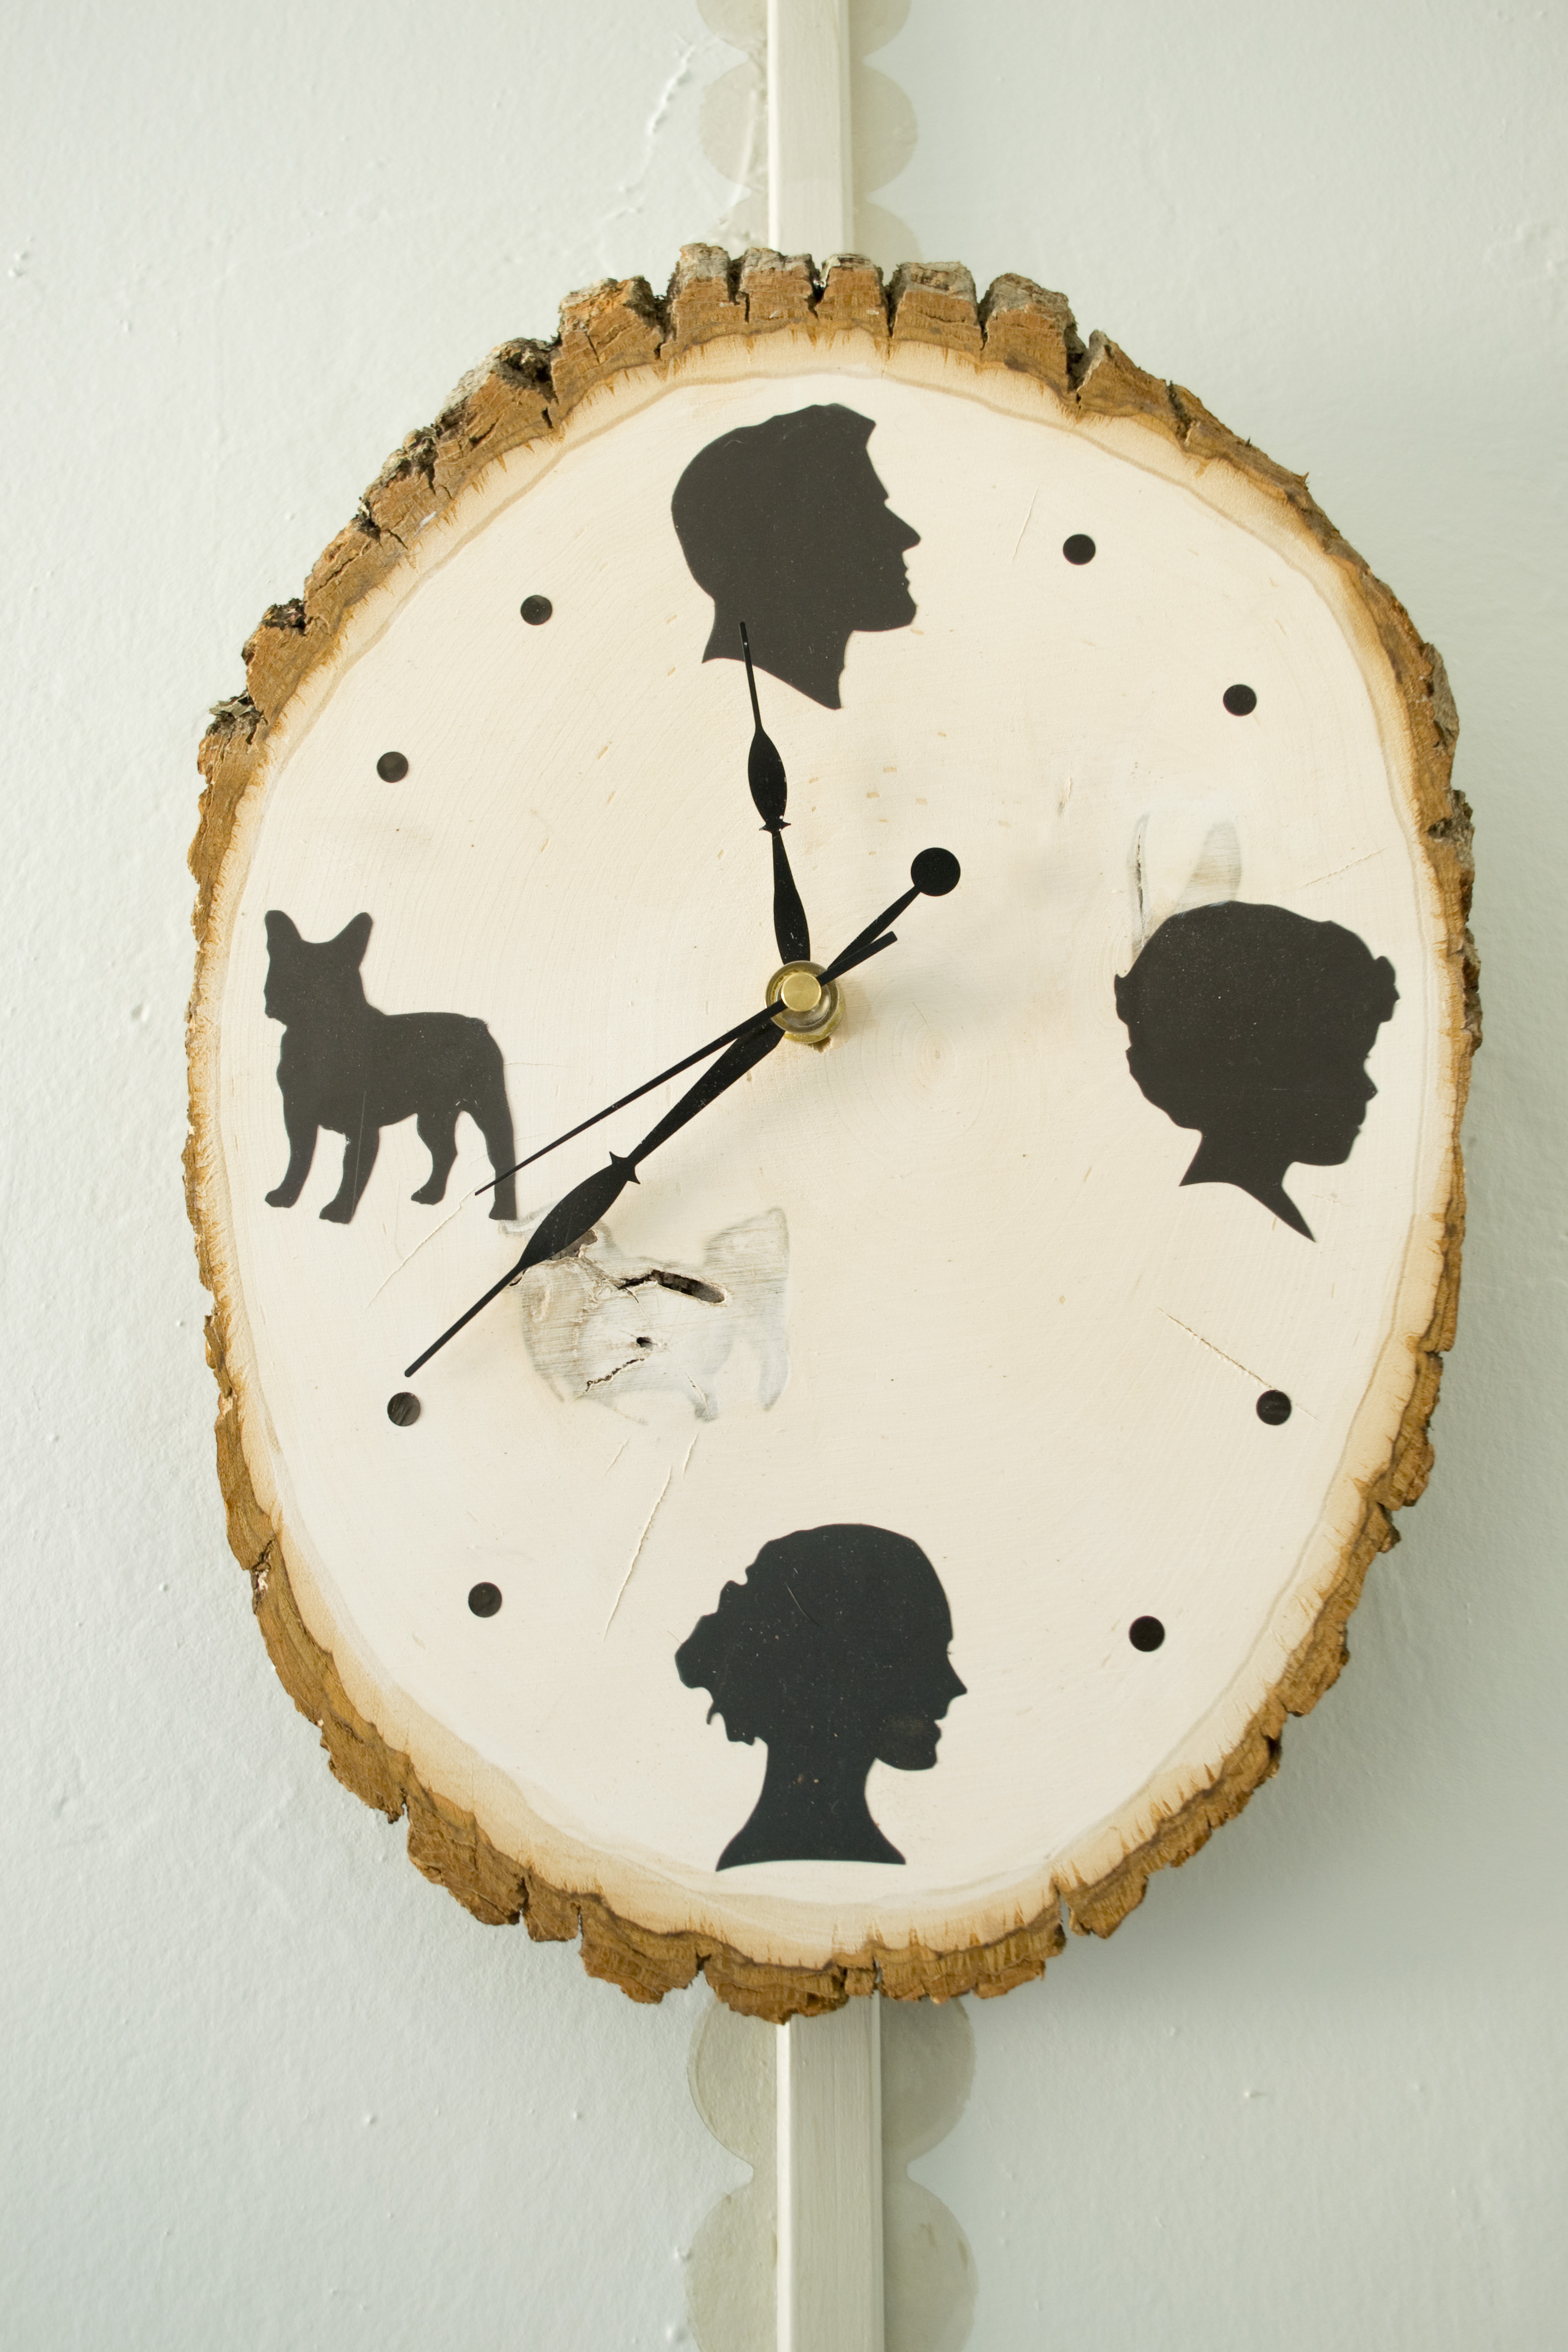 DIY Personalized Silhouette Clock